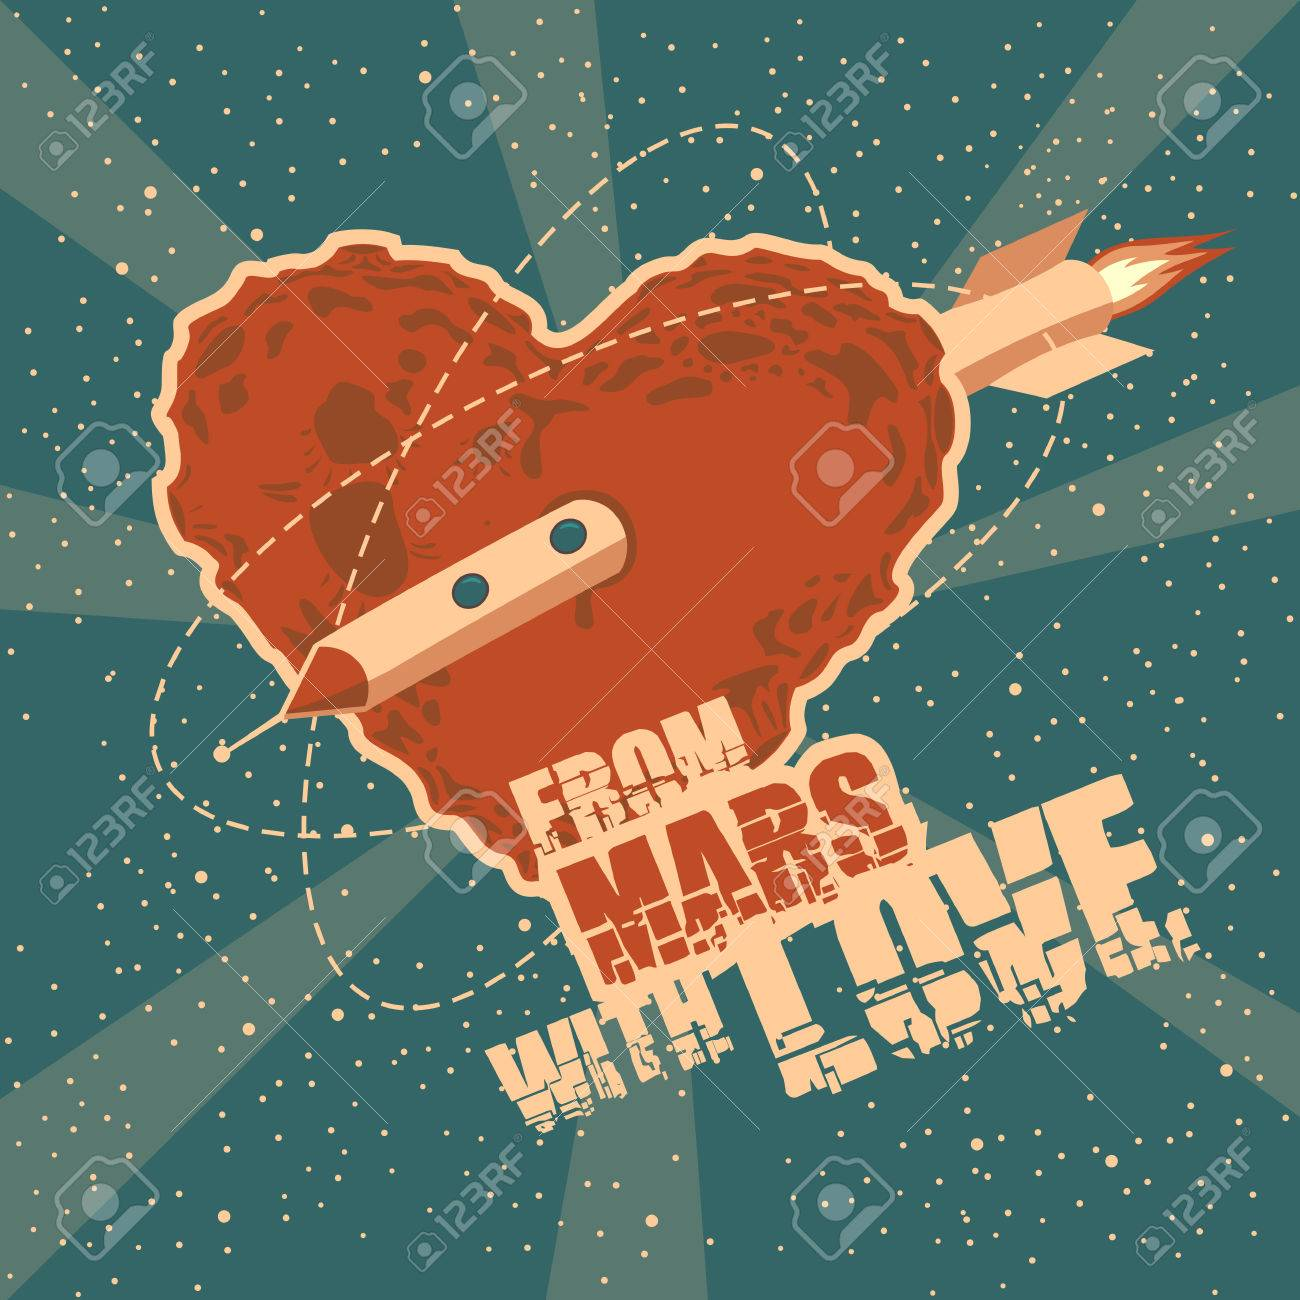 Vintage space greeting card with heart shape Stock Vector - 26044658